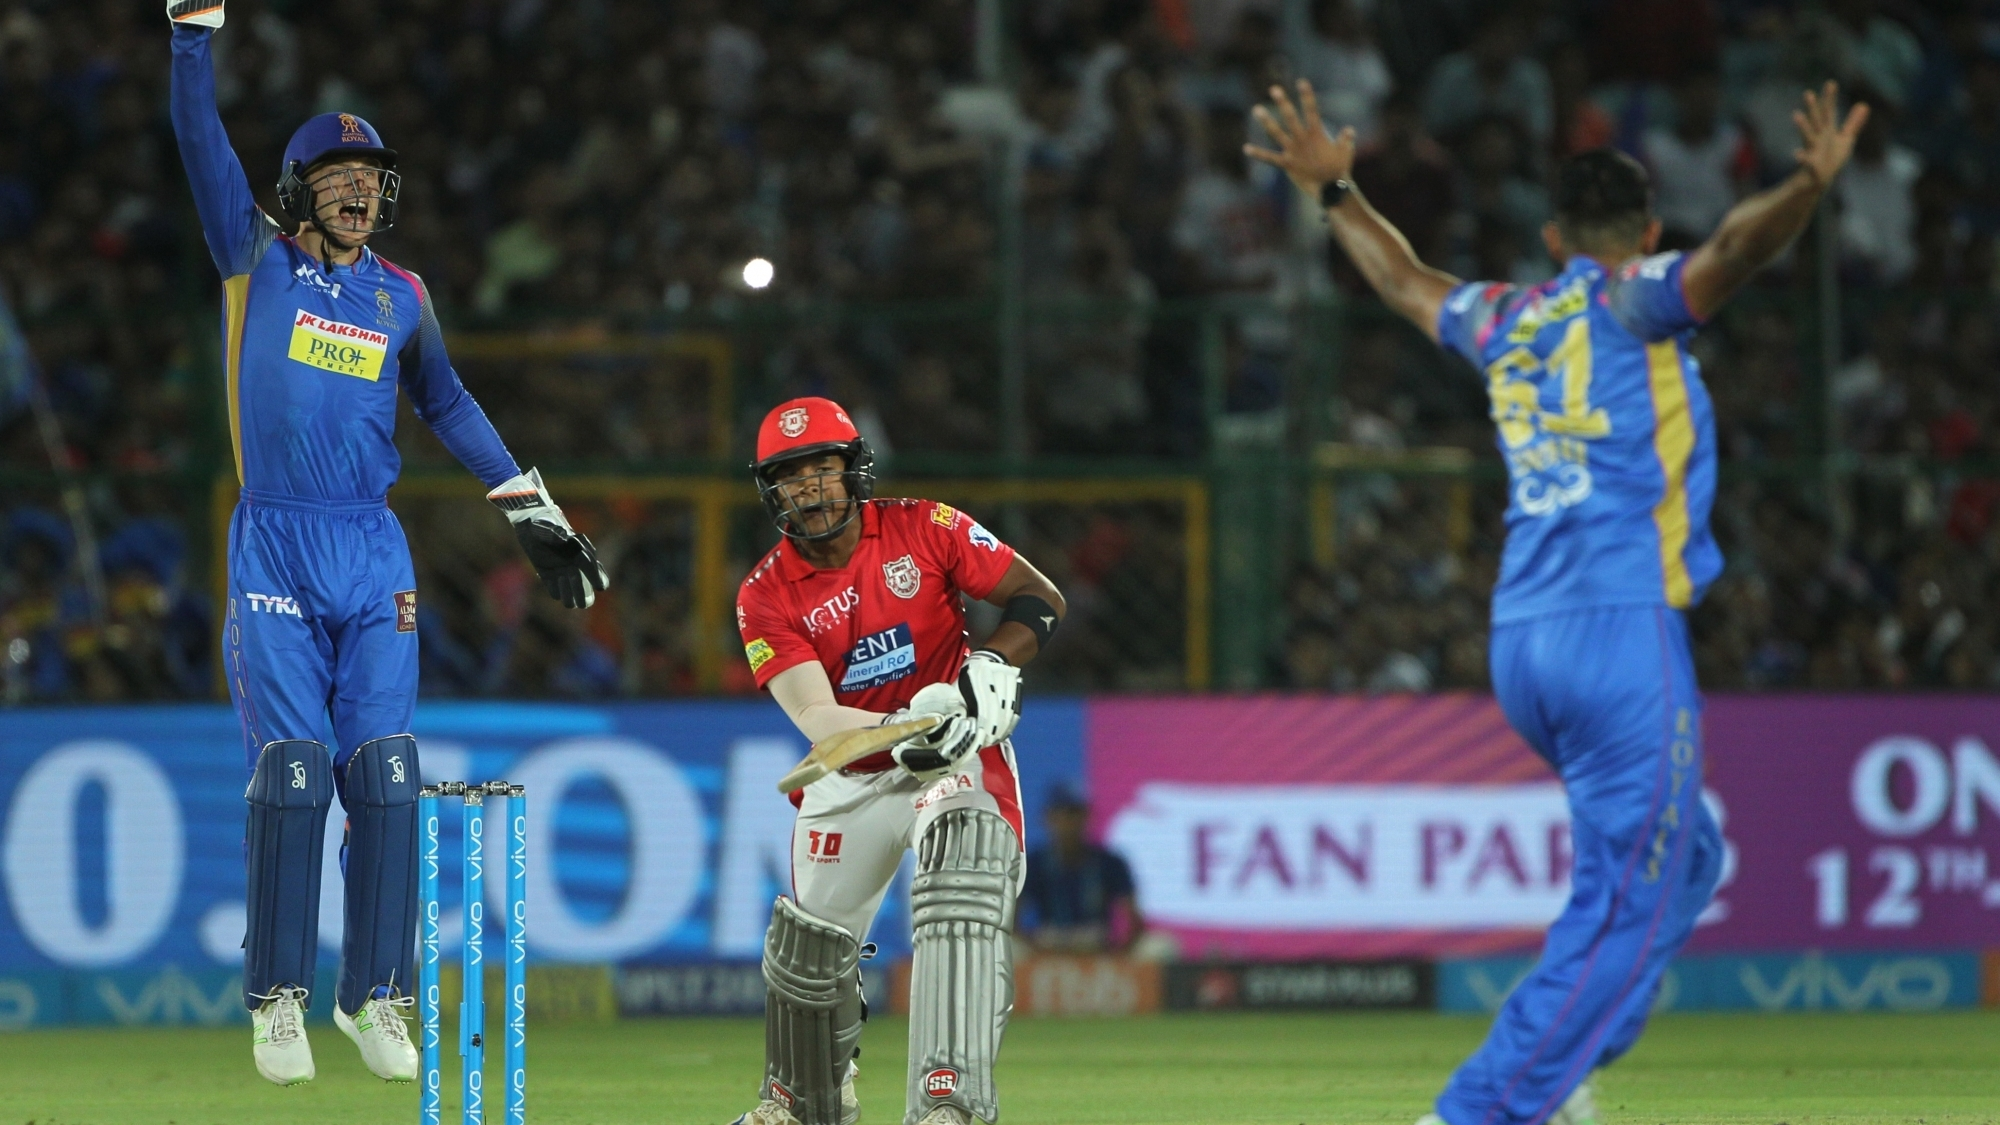 IPL 2018: Twitter reacts as Rajasthan Royals' all-round show stunned KXIP despite KL Rahul's heroics